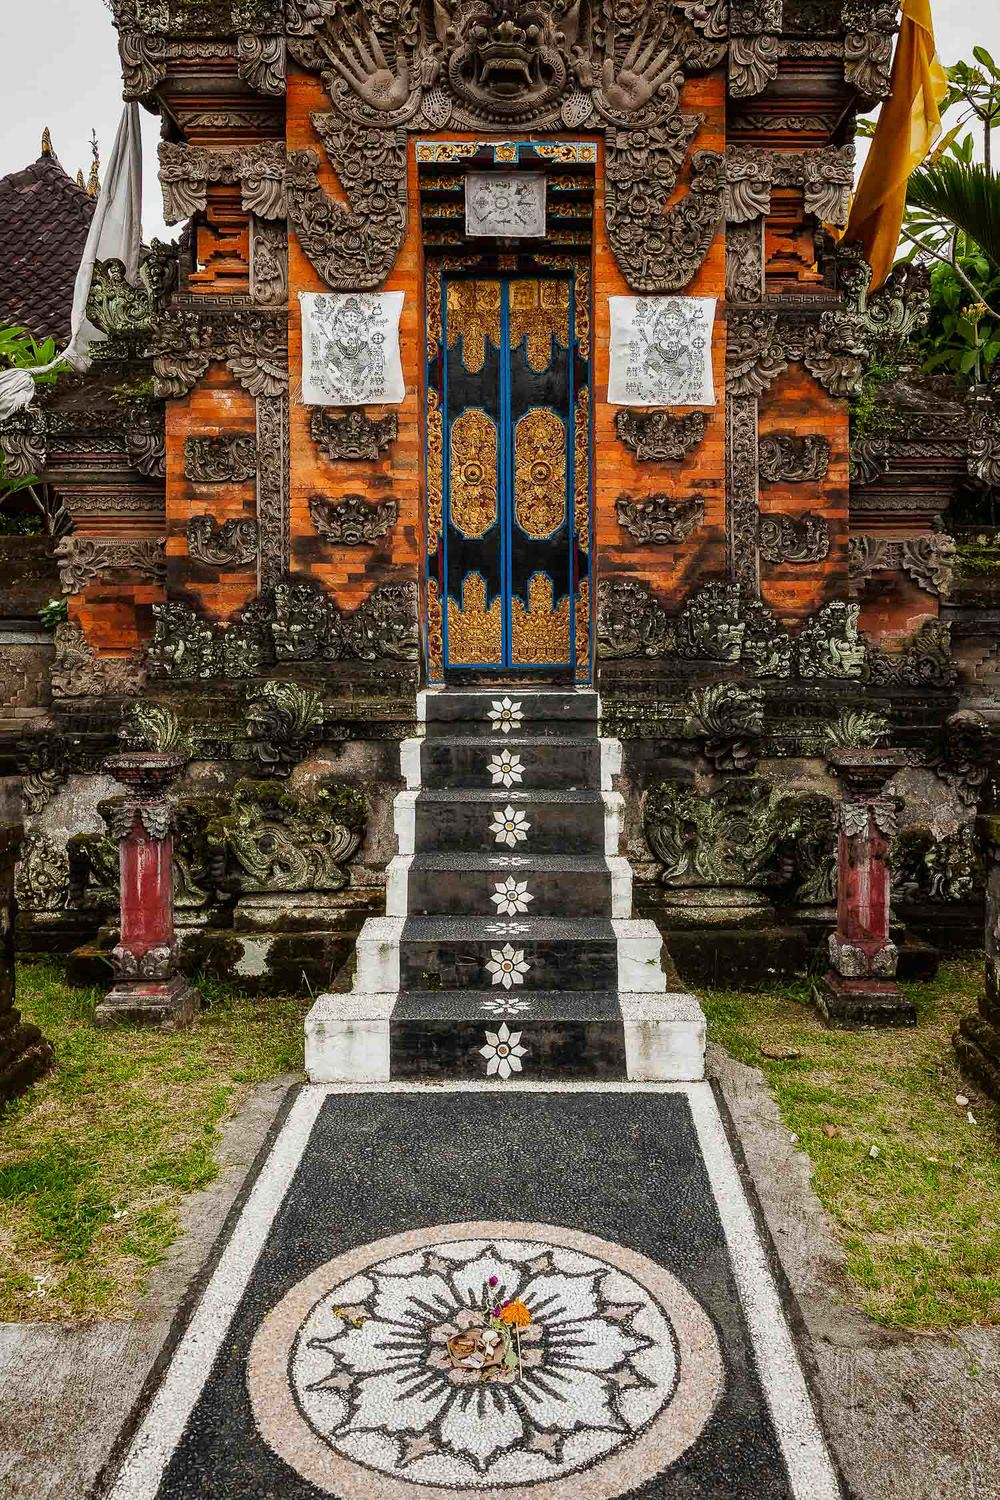 Shrine, Bali, Indonesia